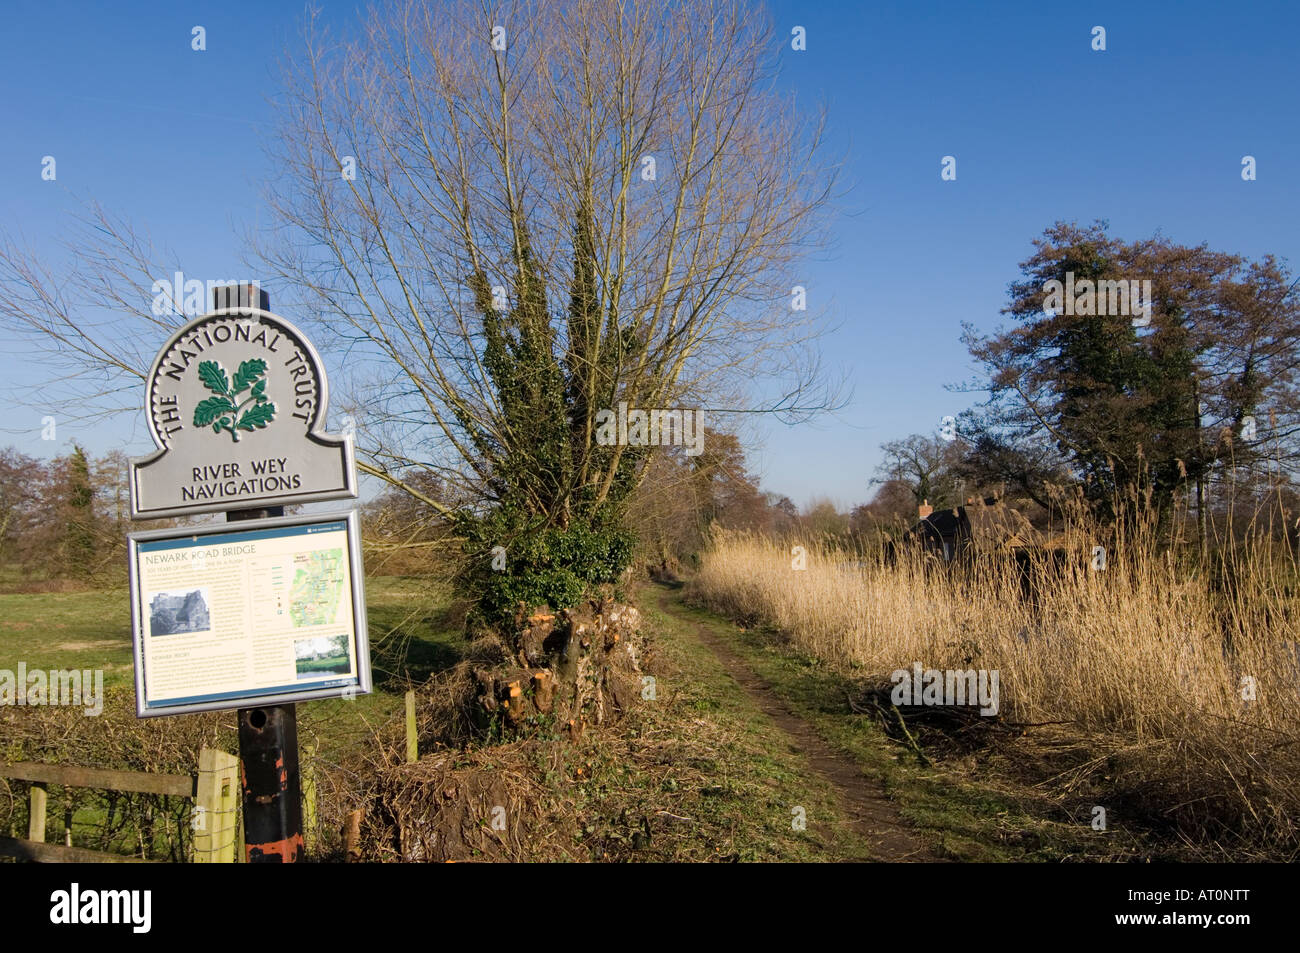 National Trust River Wey Navigation System Ripley Surrey UK - Stock Image